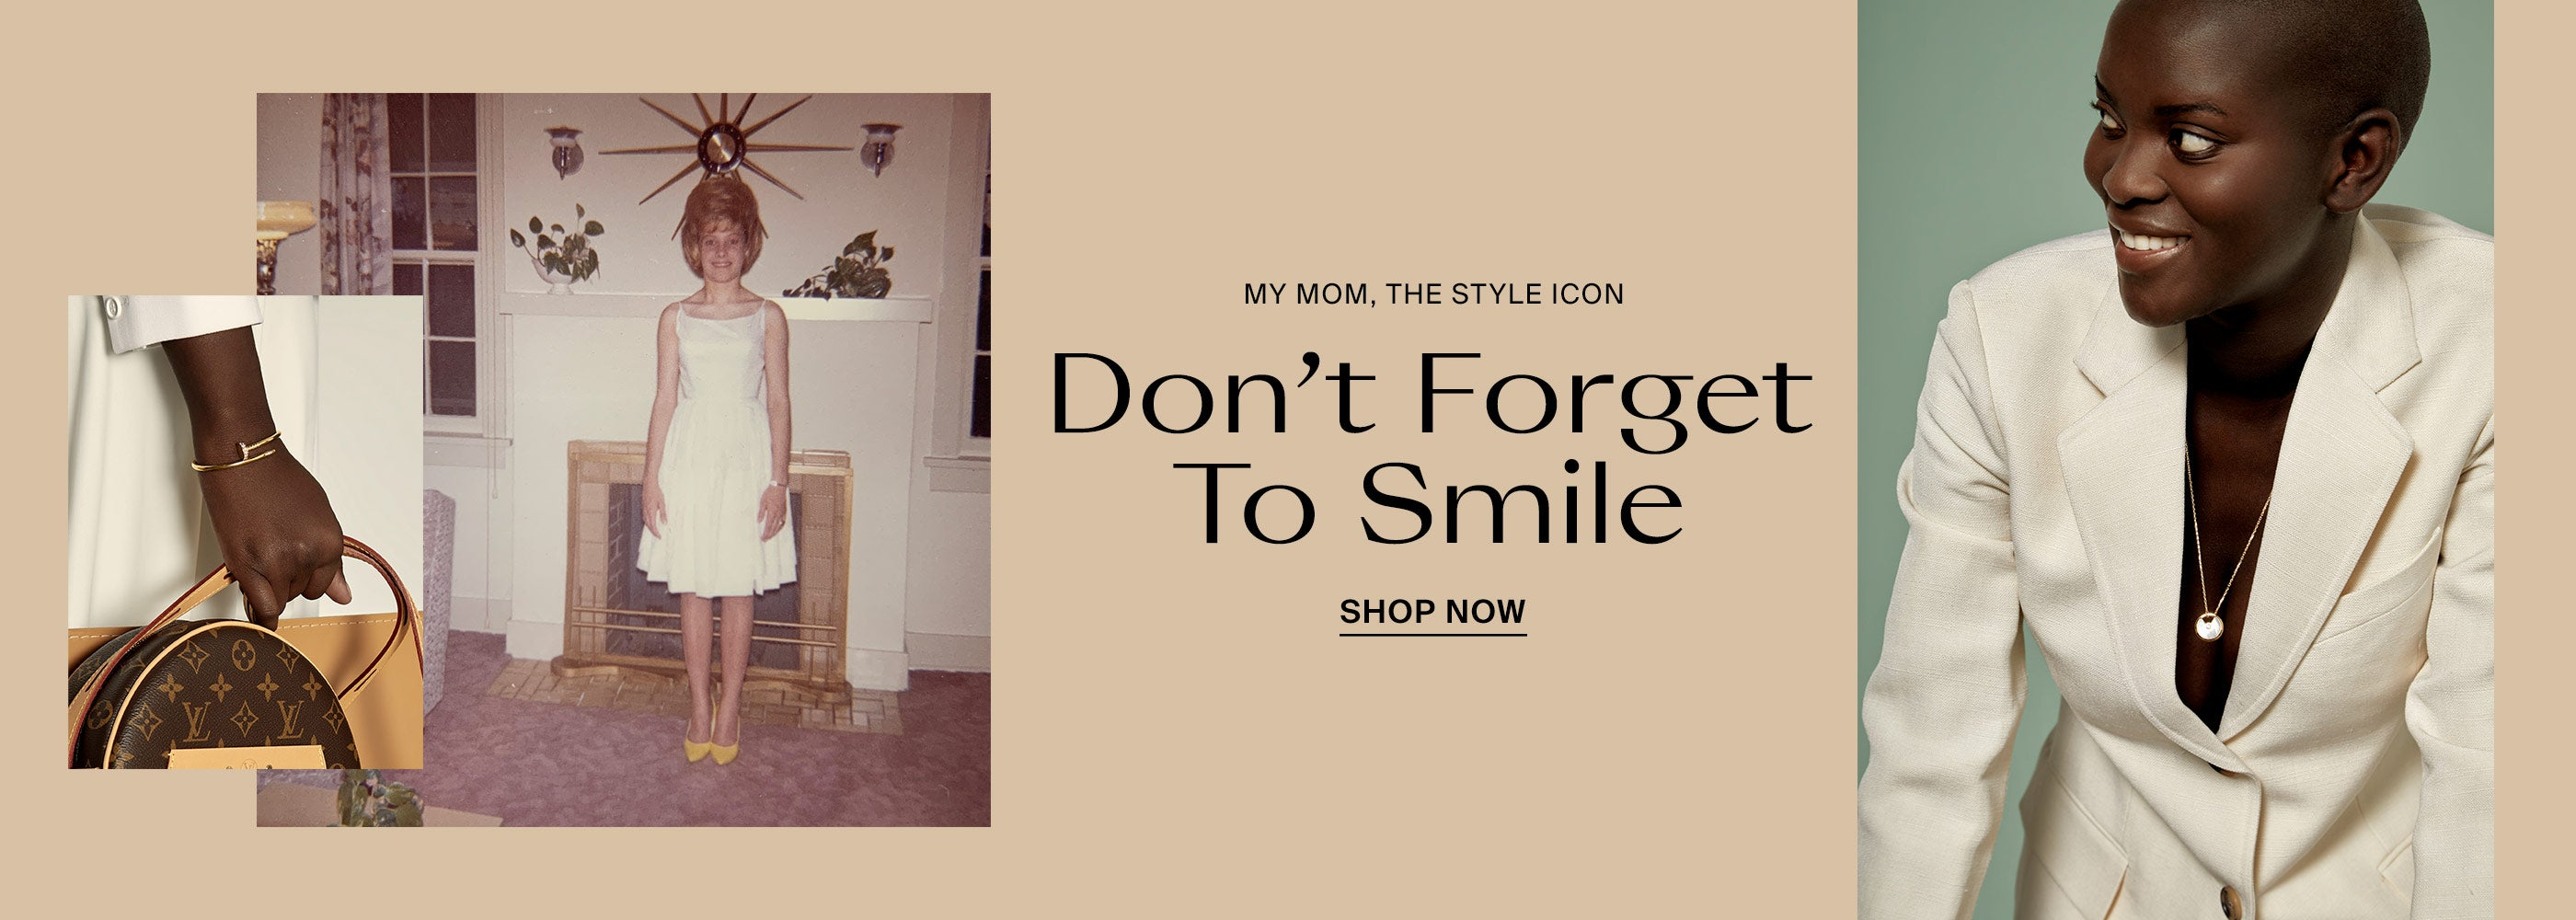 632dd3c2843 Luxury consignment sales. Shop for pre-owned designer handbags ...